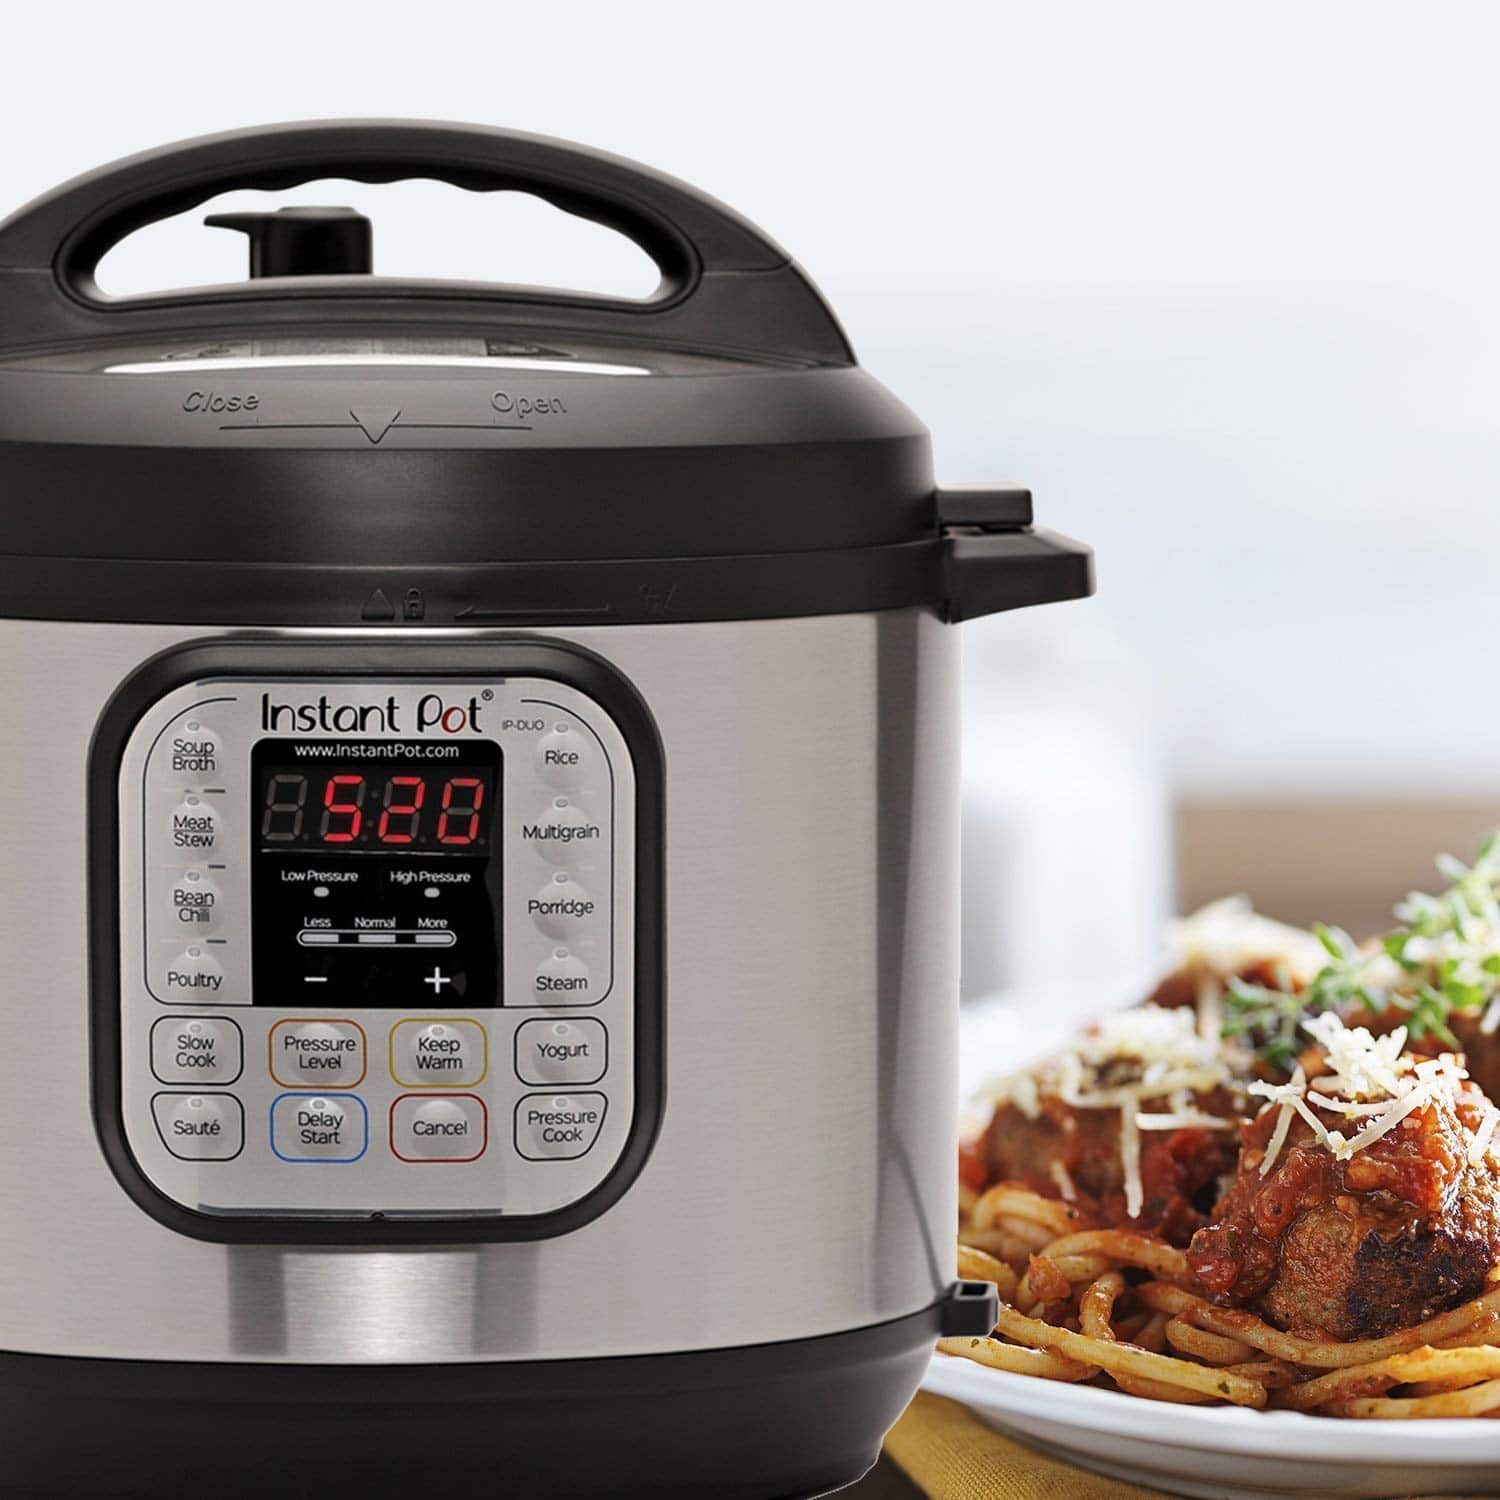 Cyber Monday Deal--Instant Pot 7-in-1 Multi- Use Programmable Pressure Cooker, Slow Cooker $64.99